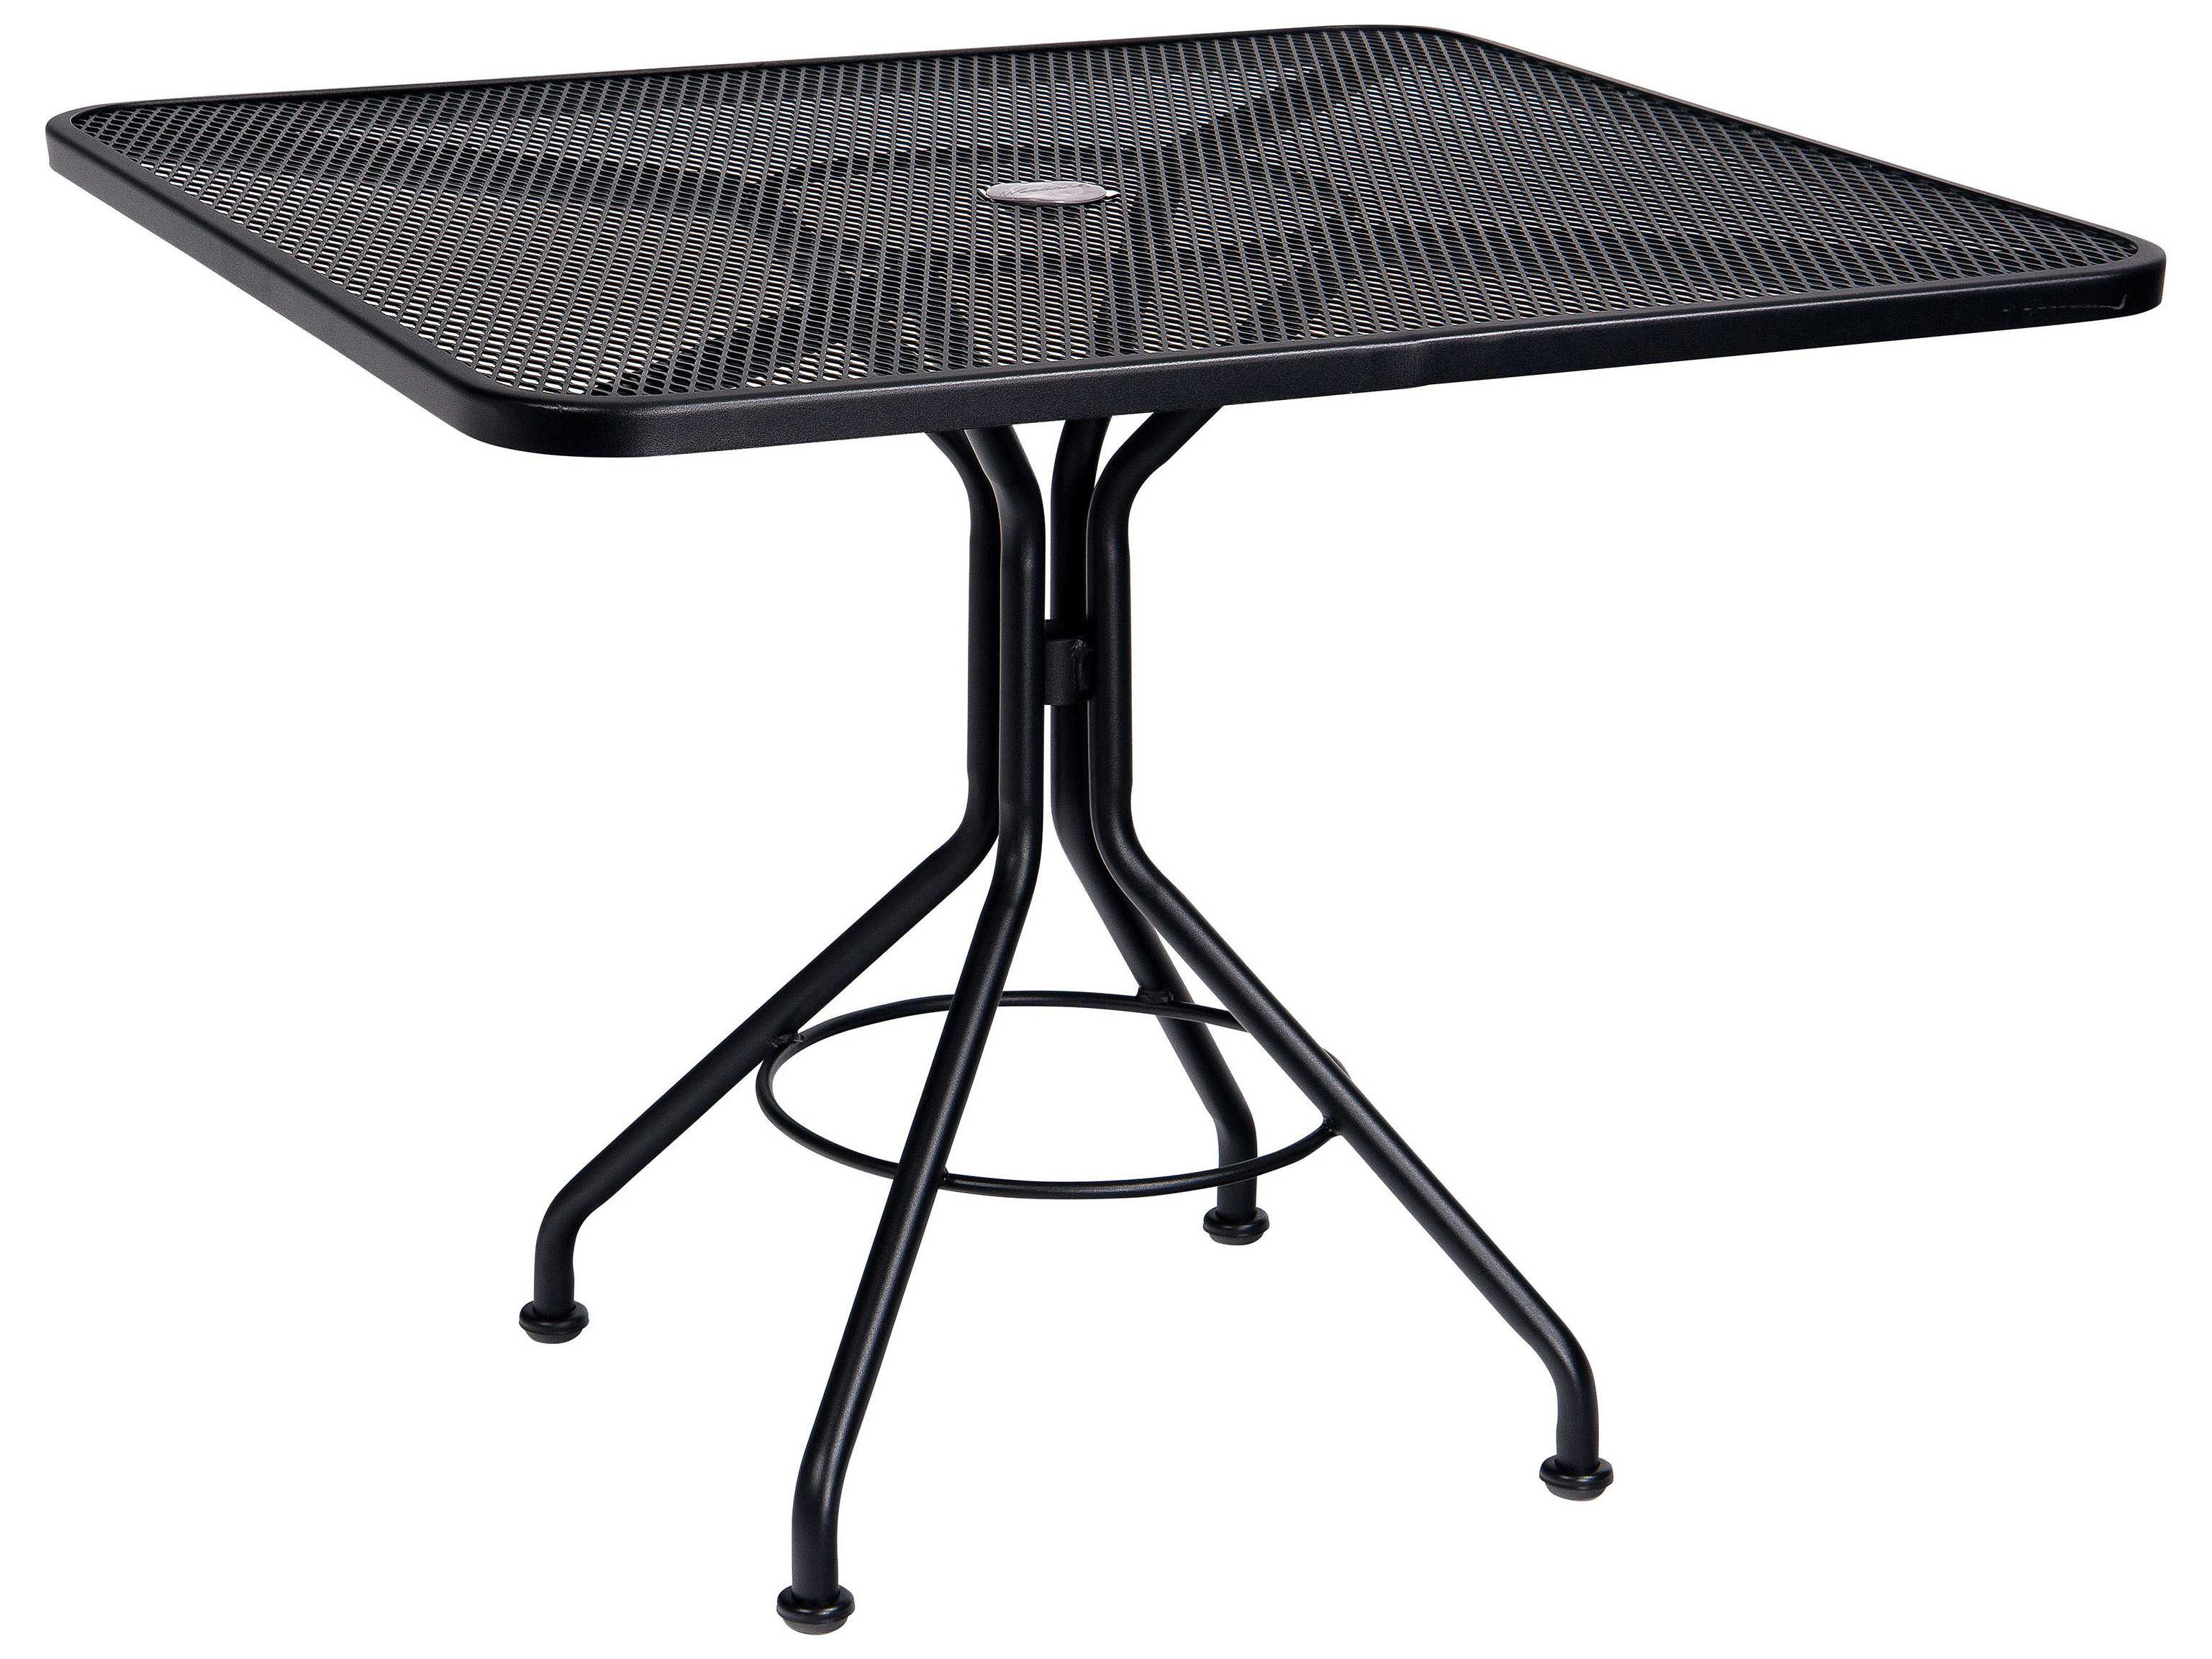 Woodard mesh wrought iron 36 square bistro table with - Picnic table with umbrella hole ...